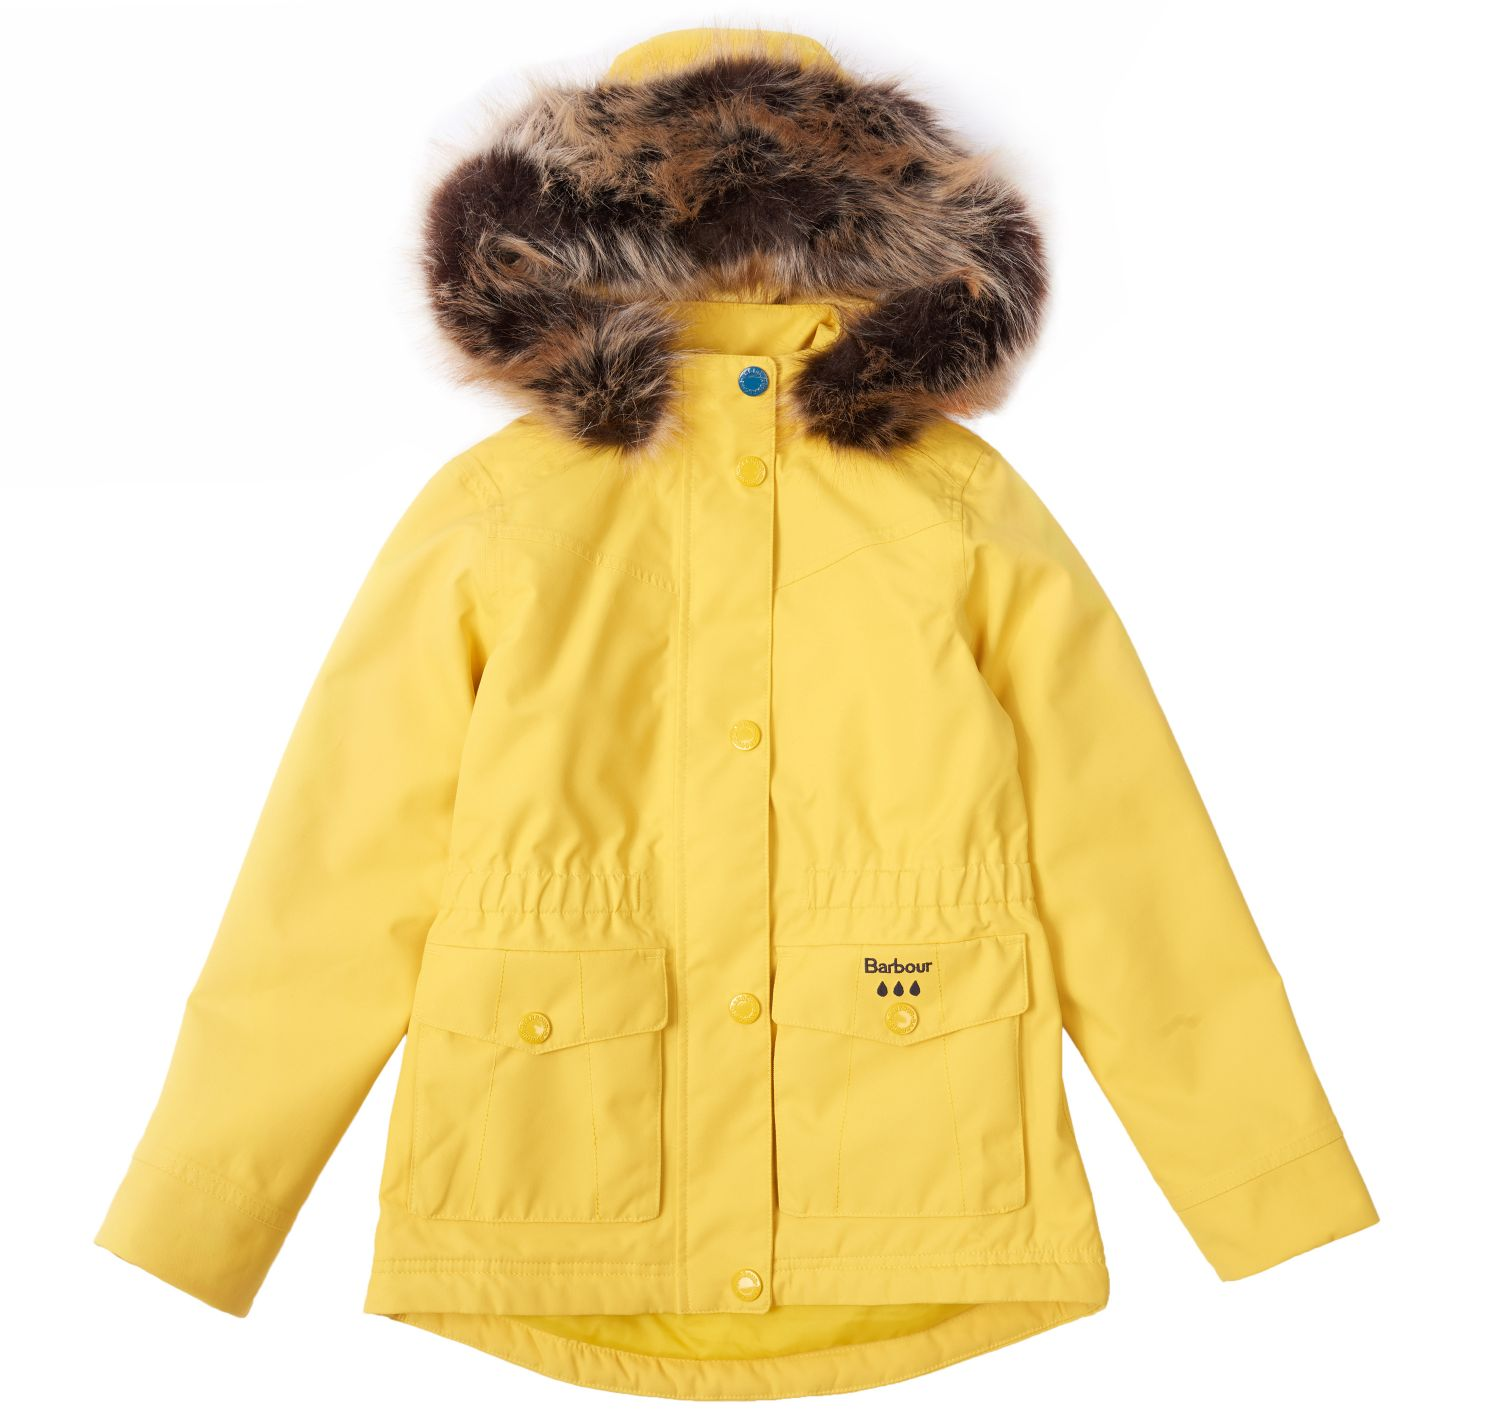 search for best better price latest design Girls' Abalone Waterproof Breathable Jacket